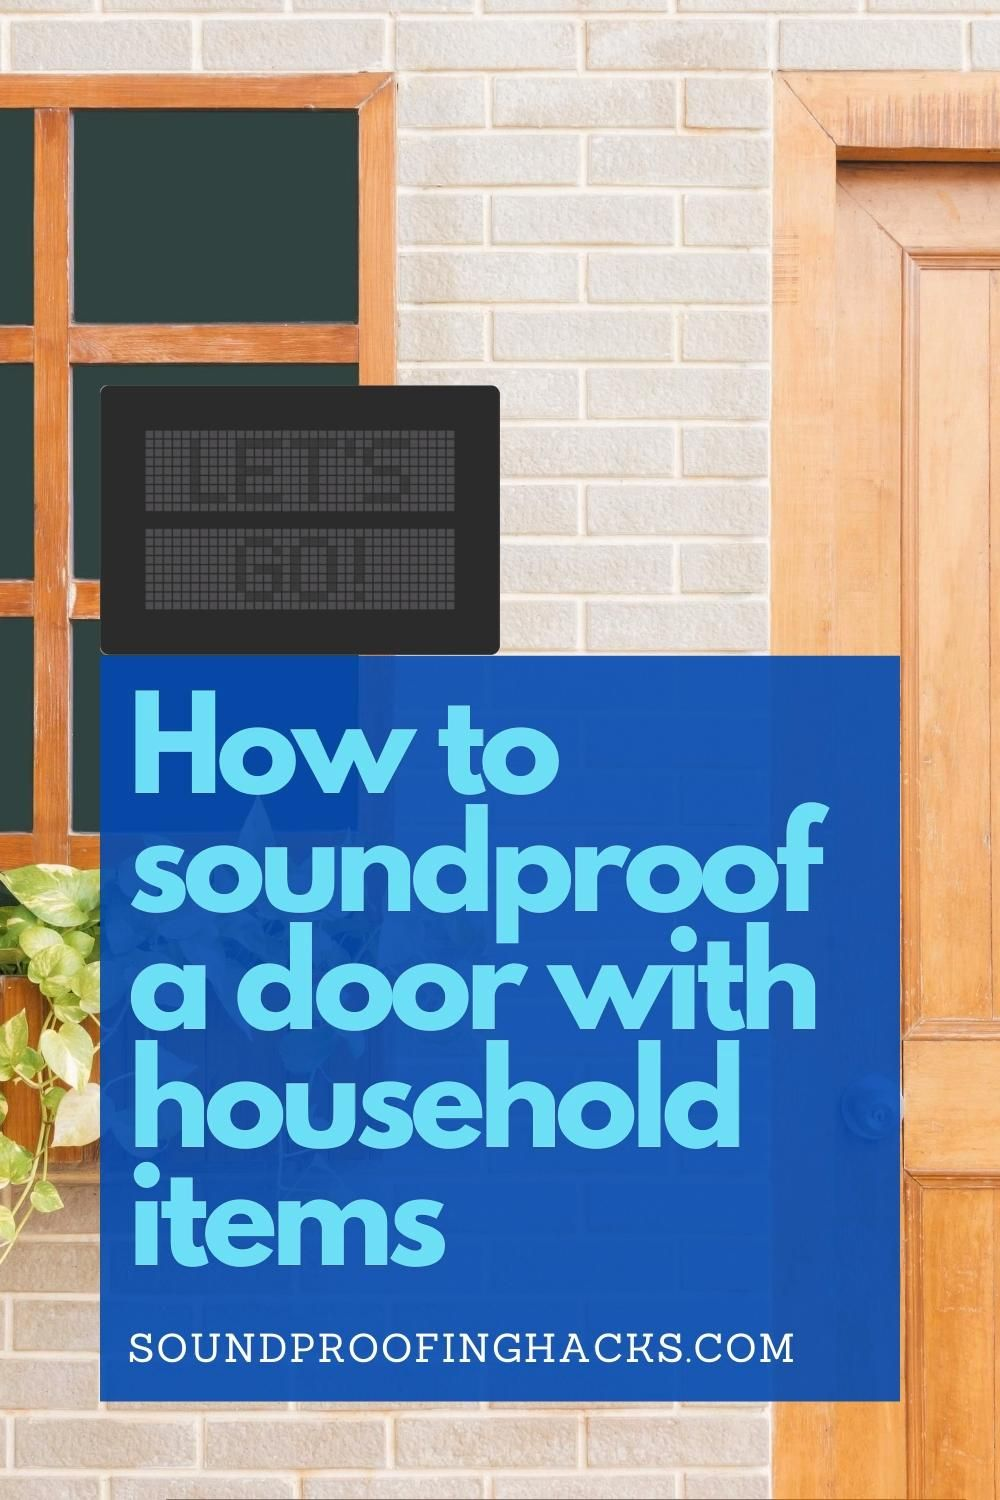 Trying Reduce Noise From Passing Through Your Door Let Me Show You How To Soundproof A Door With Household It Video In 2020 Sound Proofing Household Items Soundproofing Diy